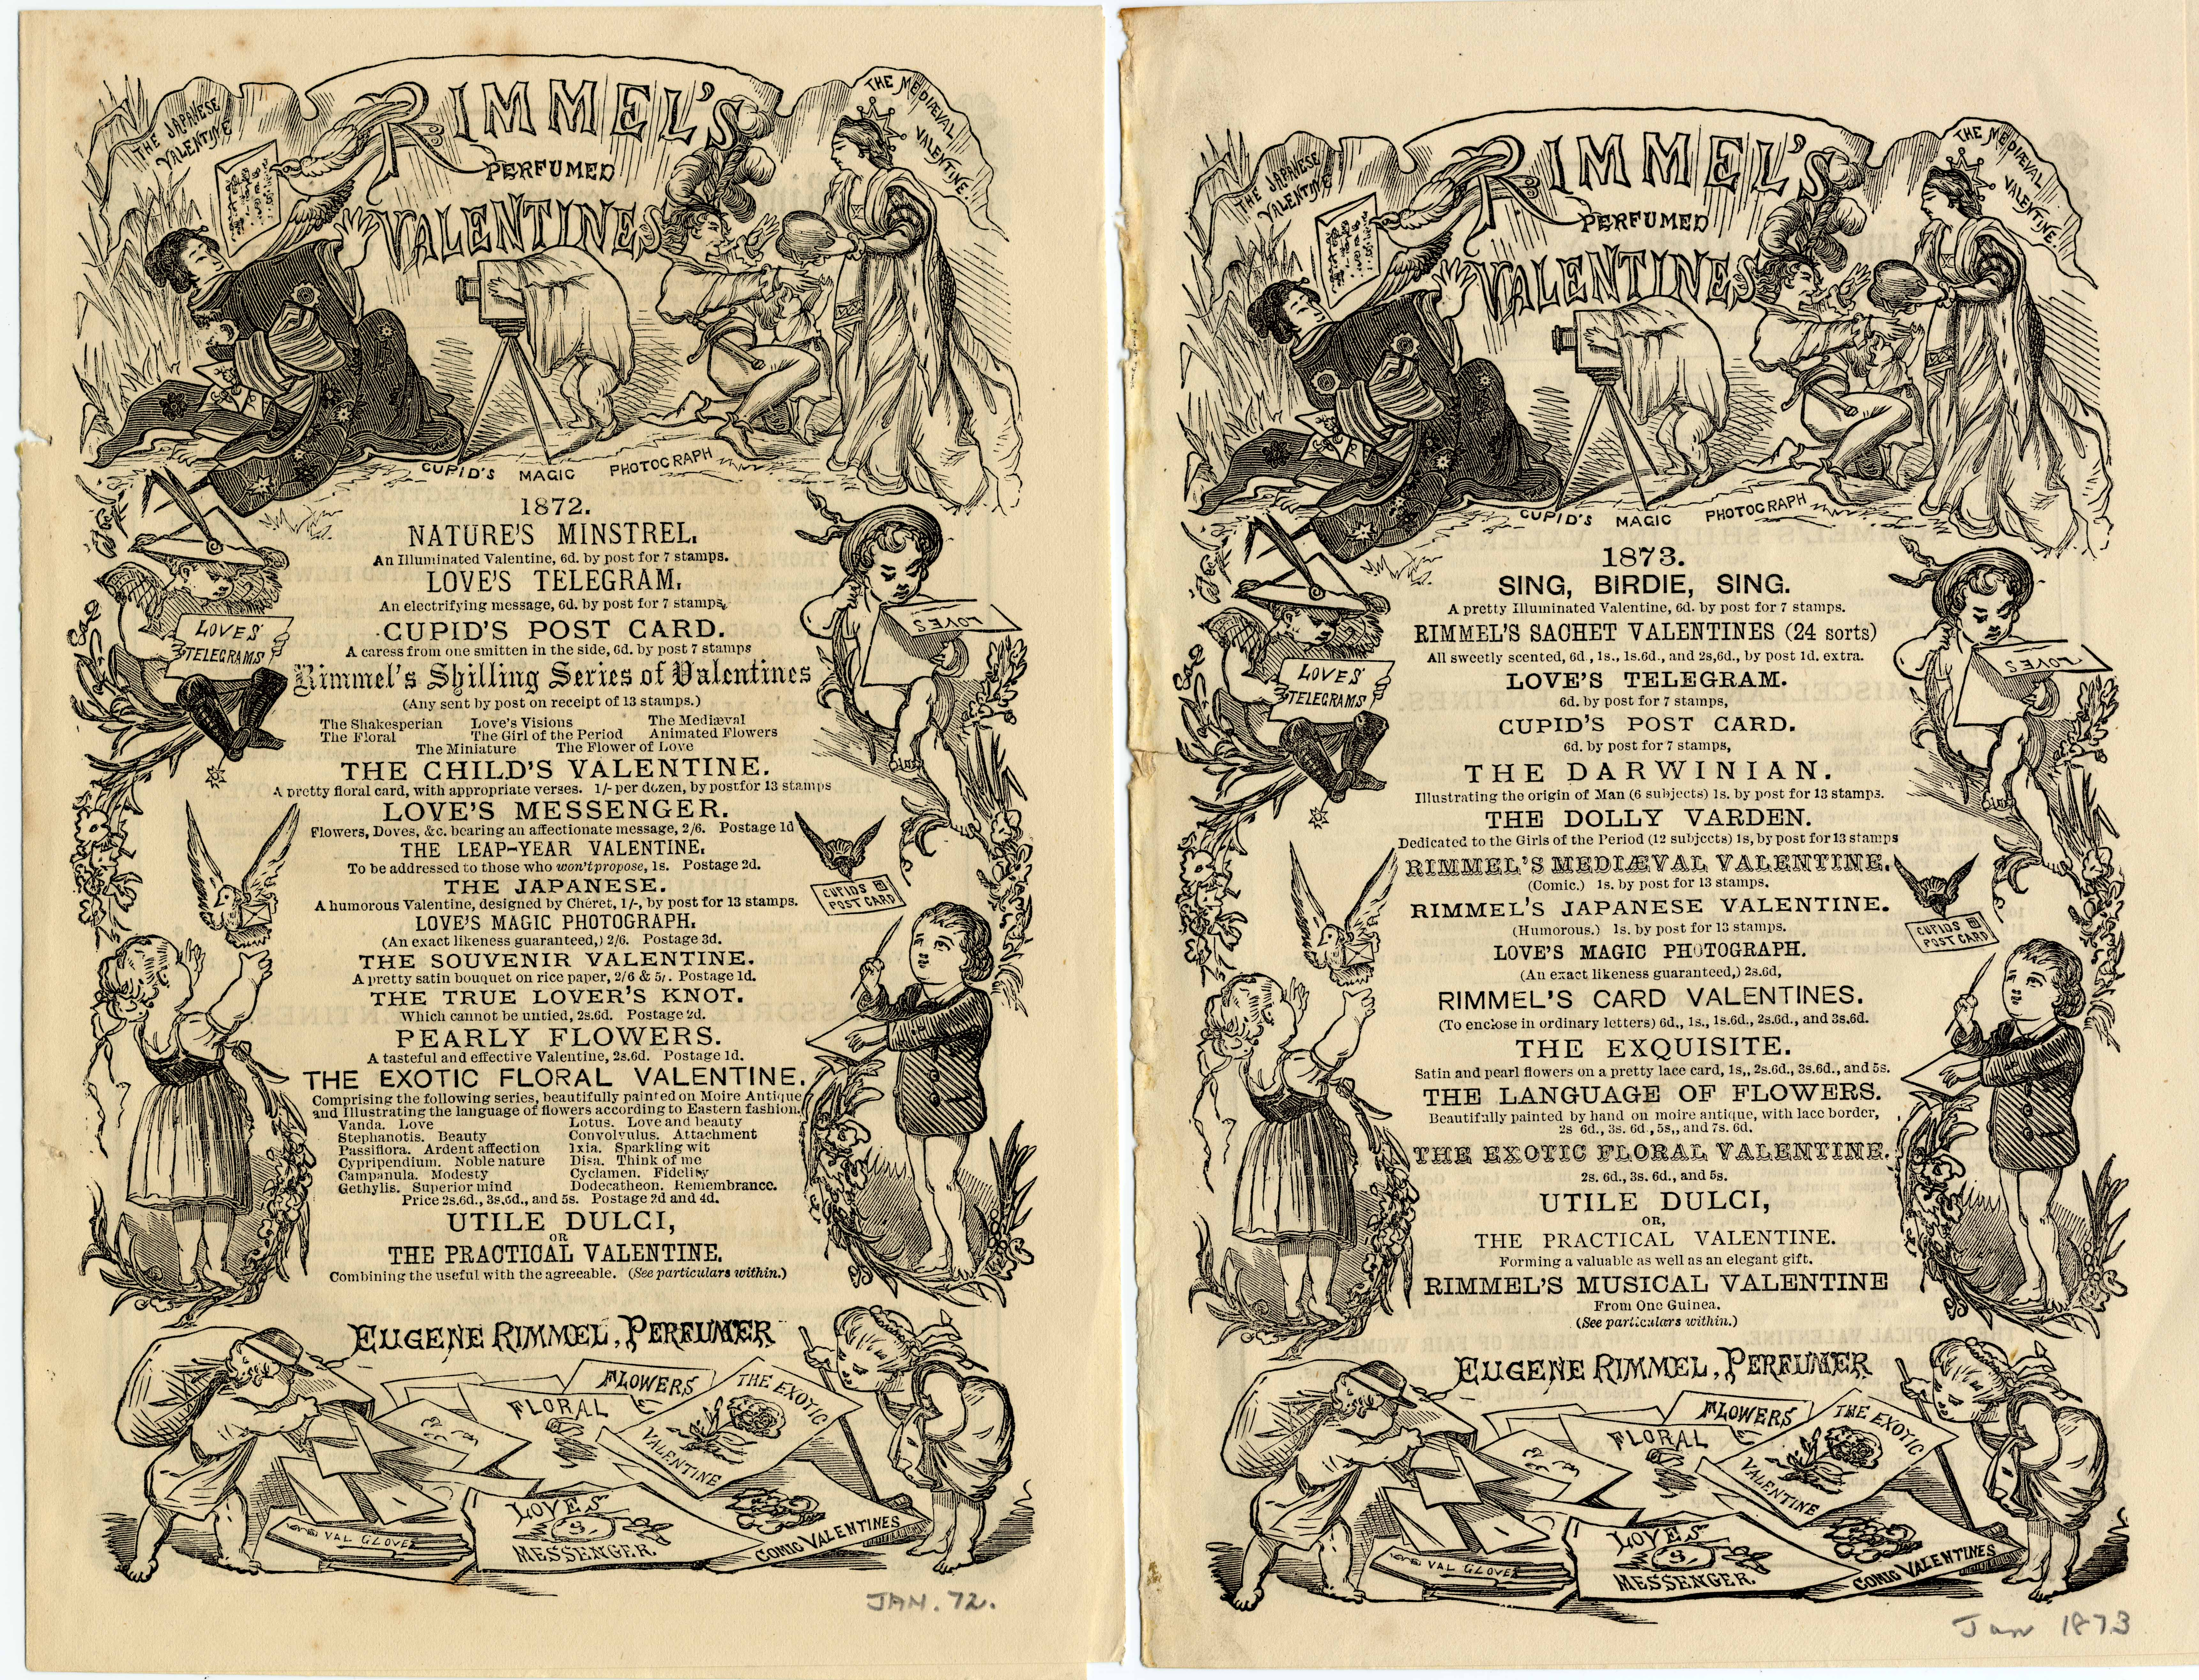 Covers of two Rimmel advertising leaflets, 1872 and 1873